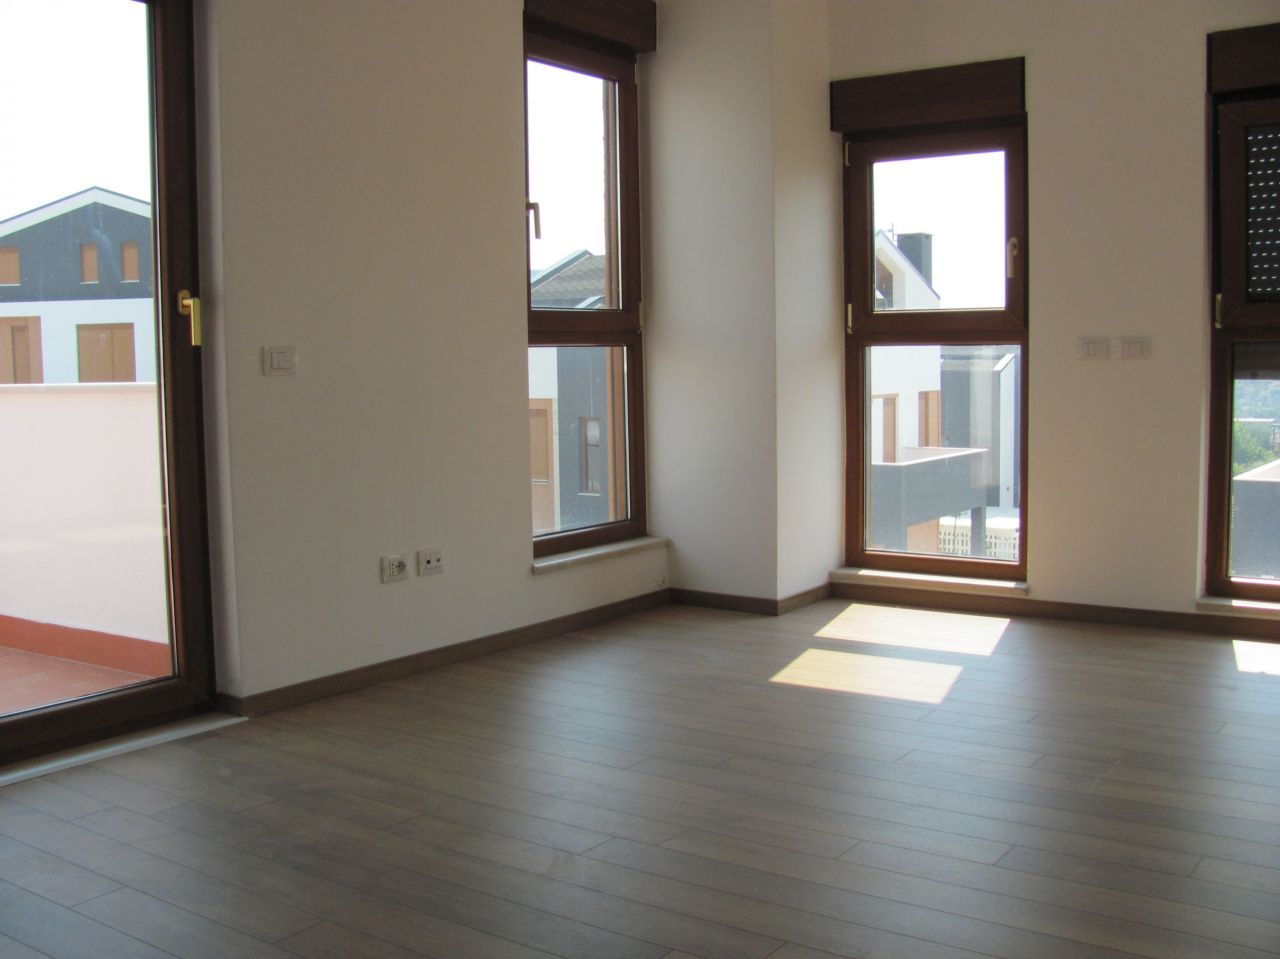 property for rent in tirana, the construction is brand new and the place very peaceful